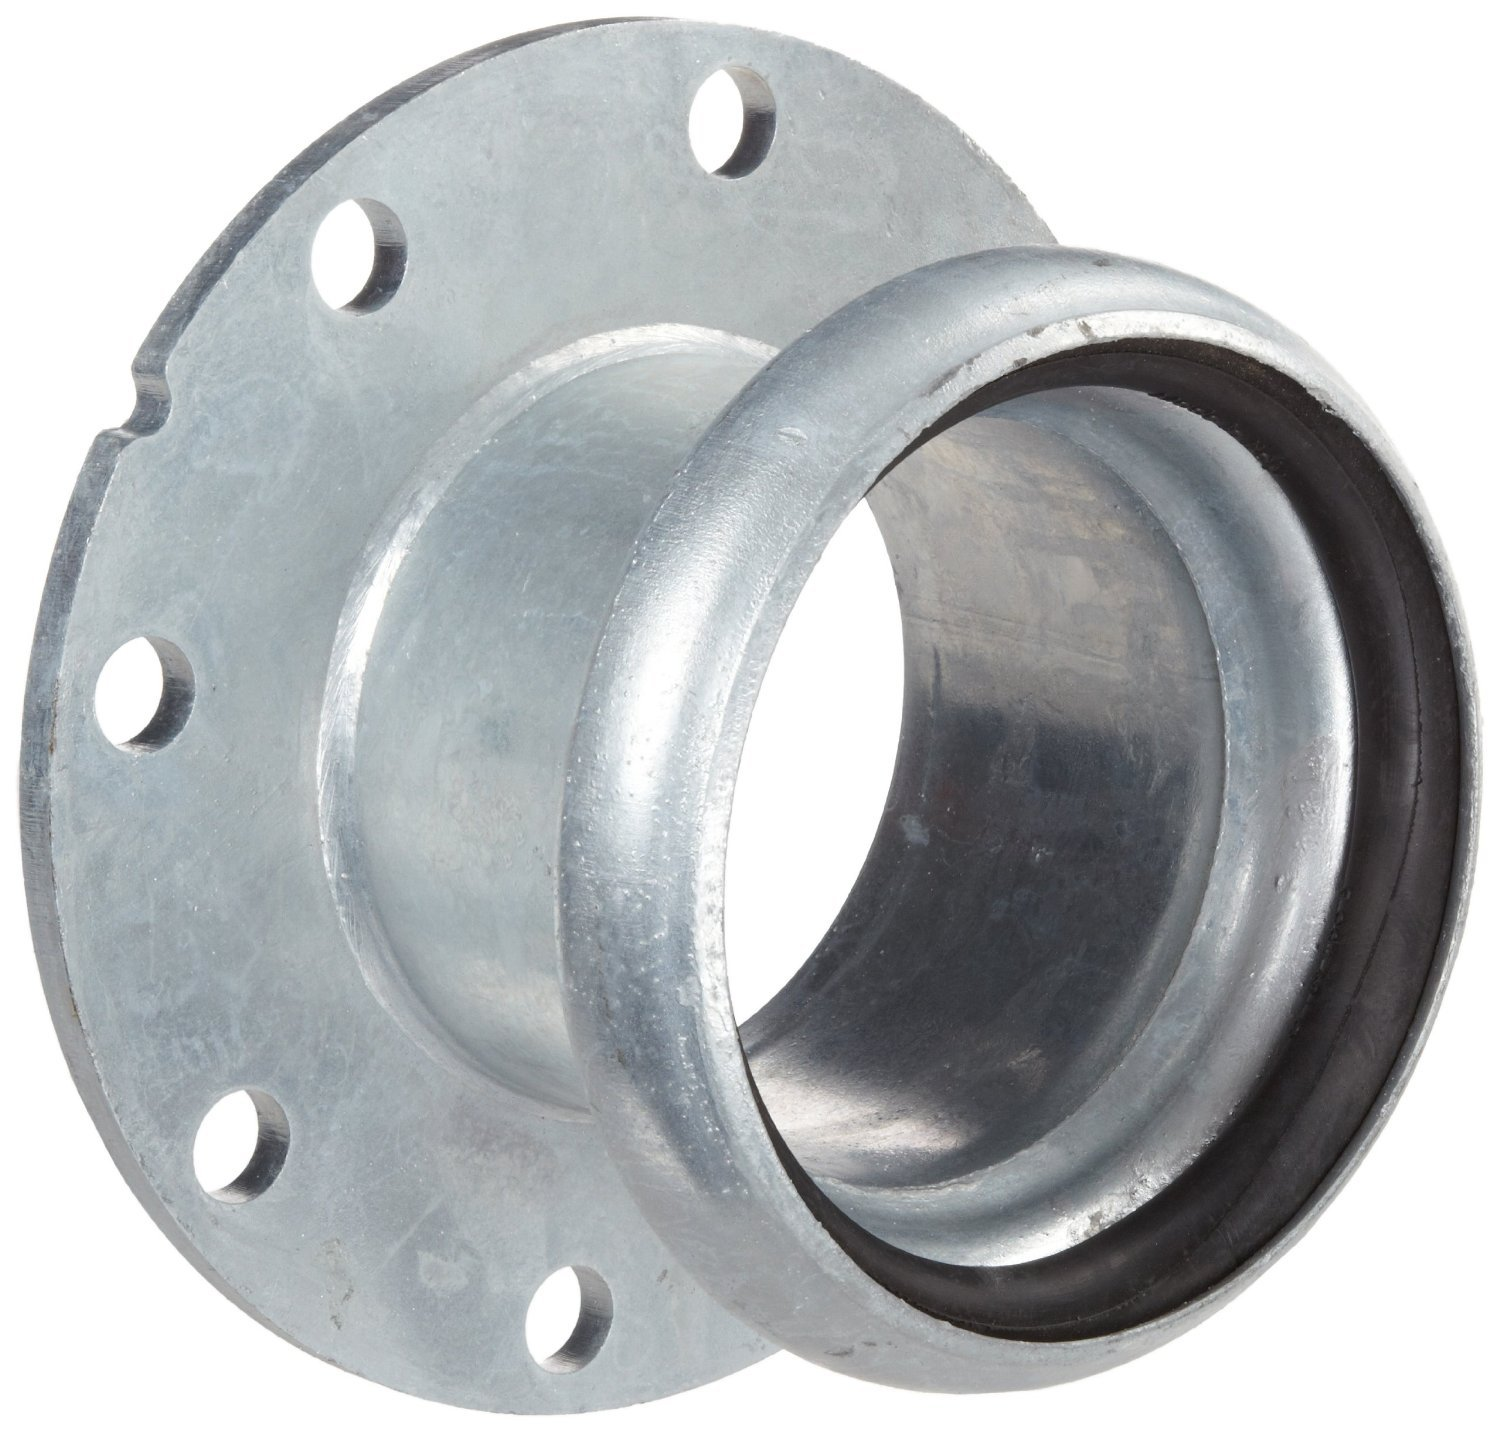 Dixon FC3148 Galvanized Steel Type B Shank/Water Quick-Connect Fitting, Coupler with Gasket, 8'' Female Coupling x 150 ASA Flange